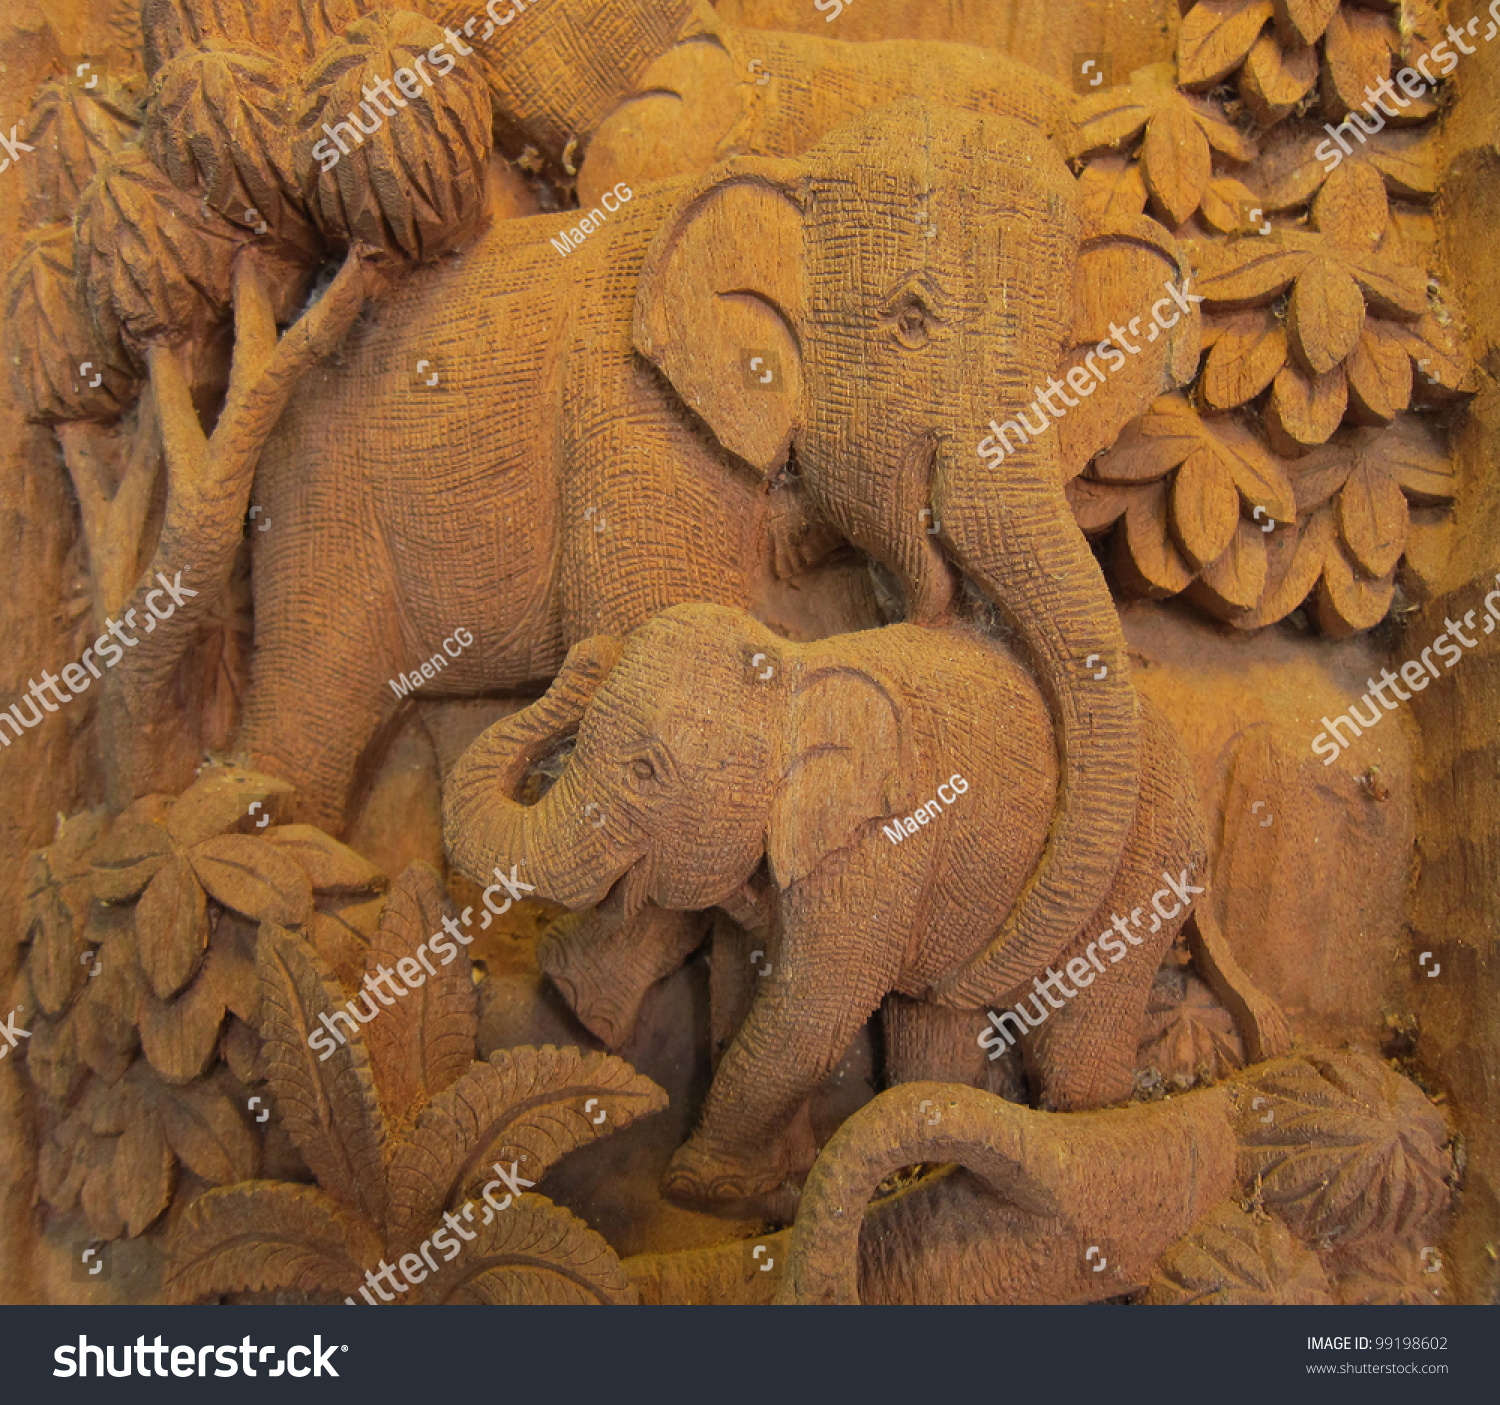 Elephant forest high relief carving sculpture stock photo